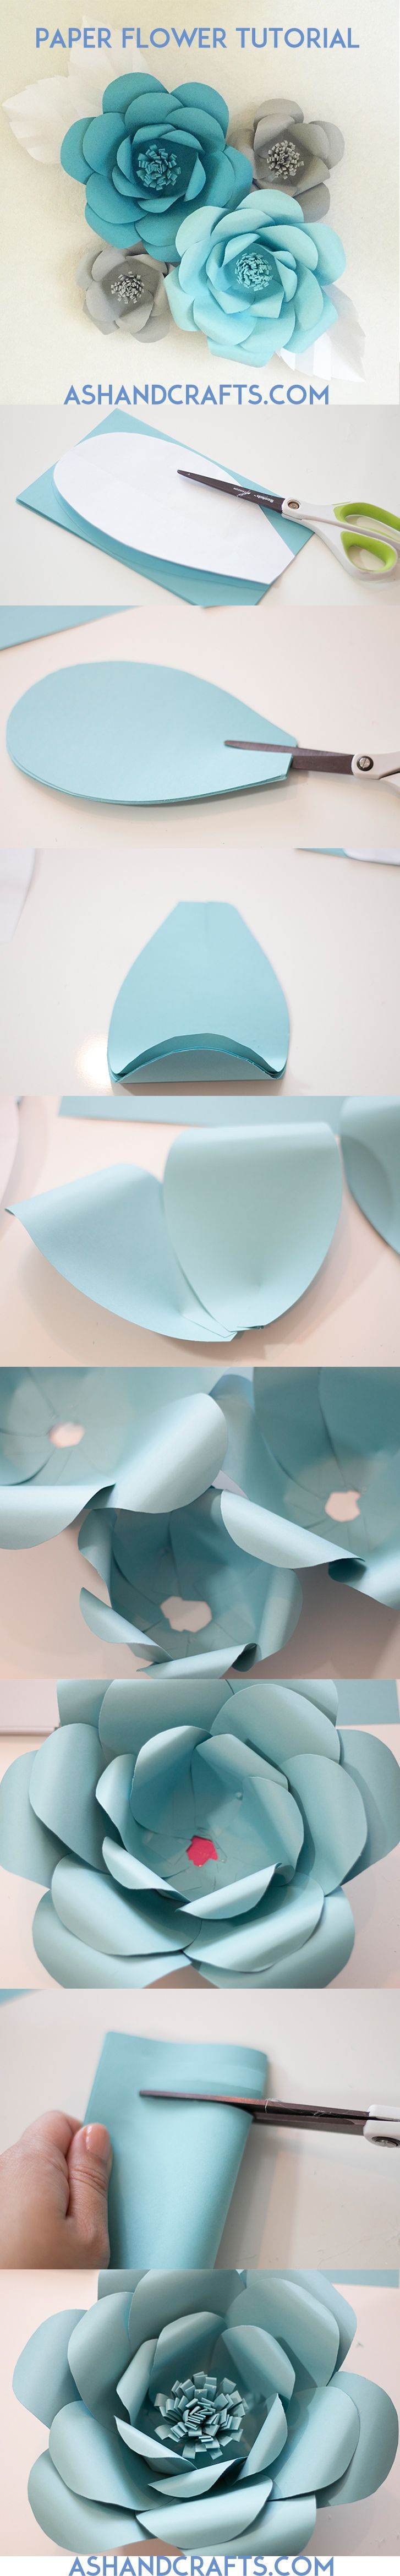 Paper Flower Tutorial with Template - Ashandcrafts.com